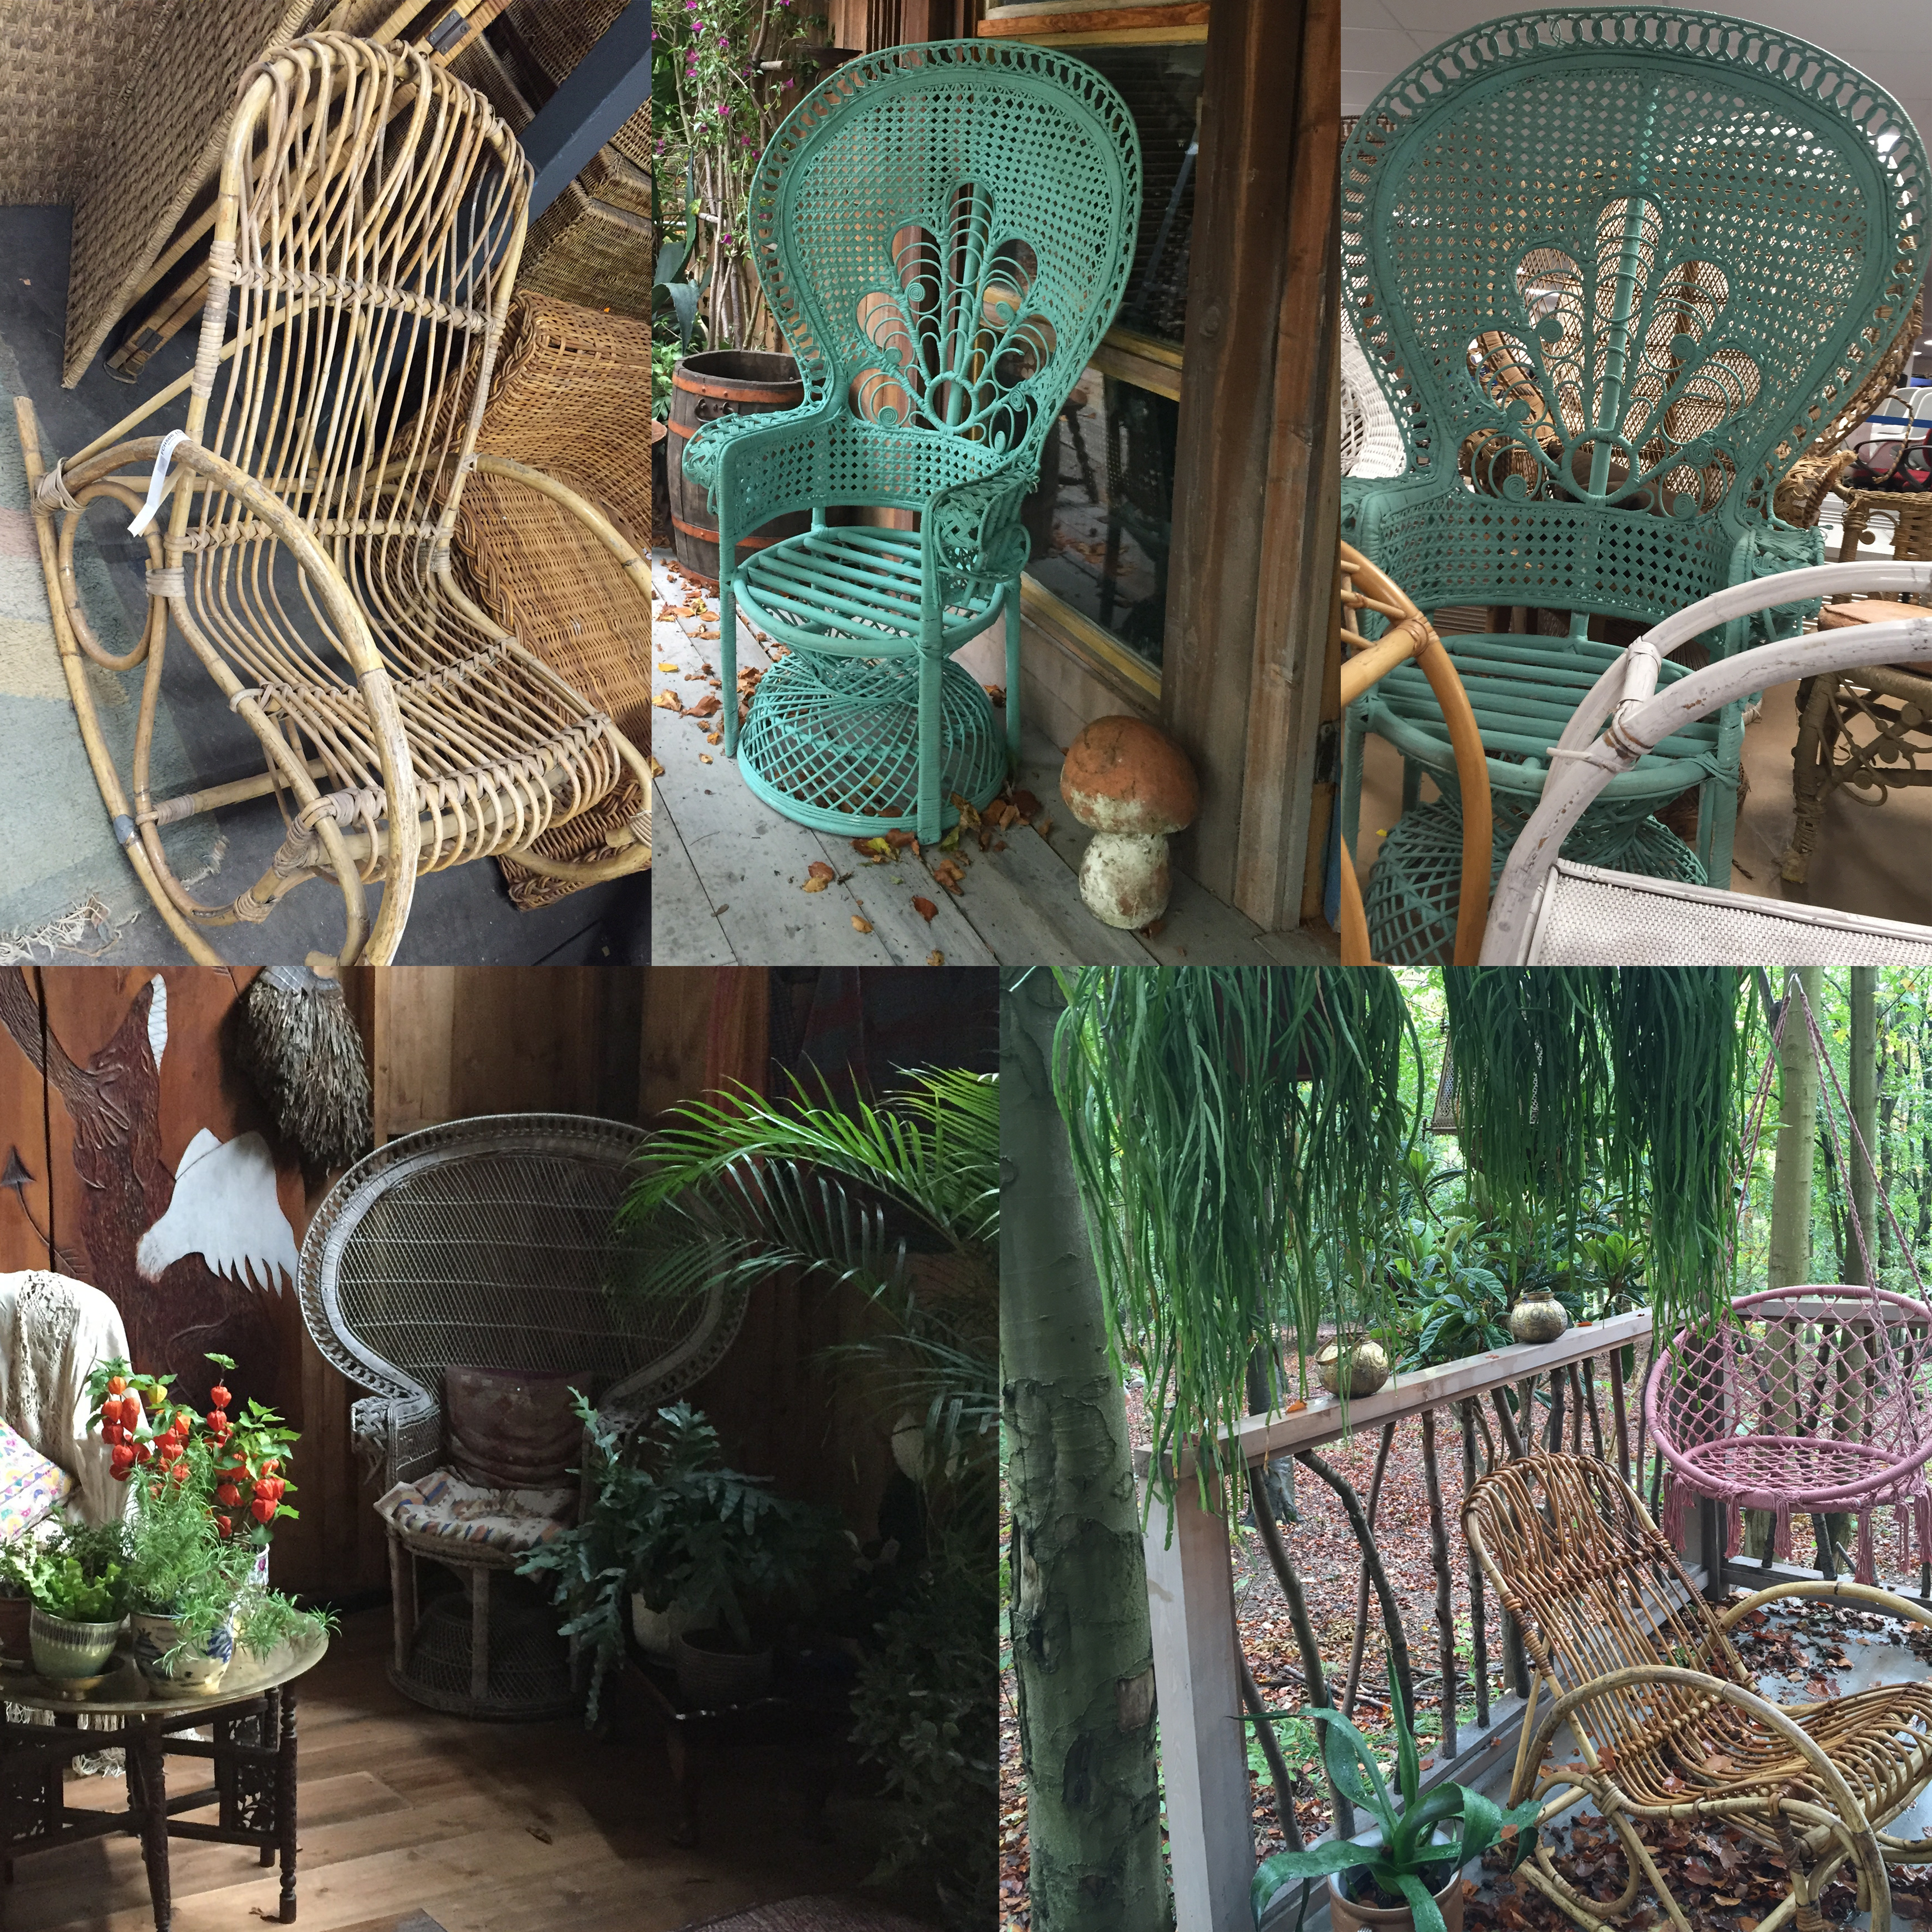 A variety of cane chairs were used in the Mama Casa filmset Rocketman filmsets